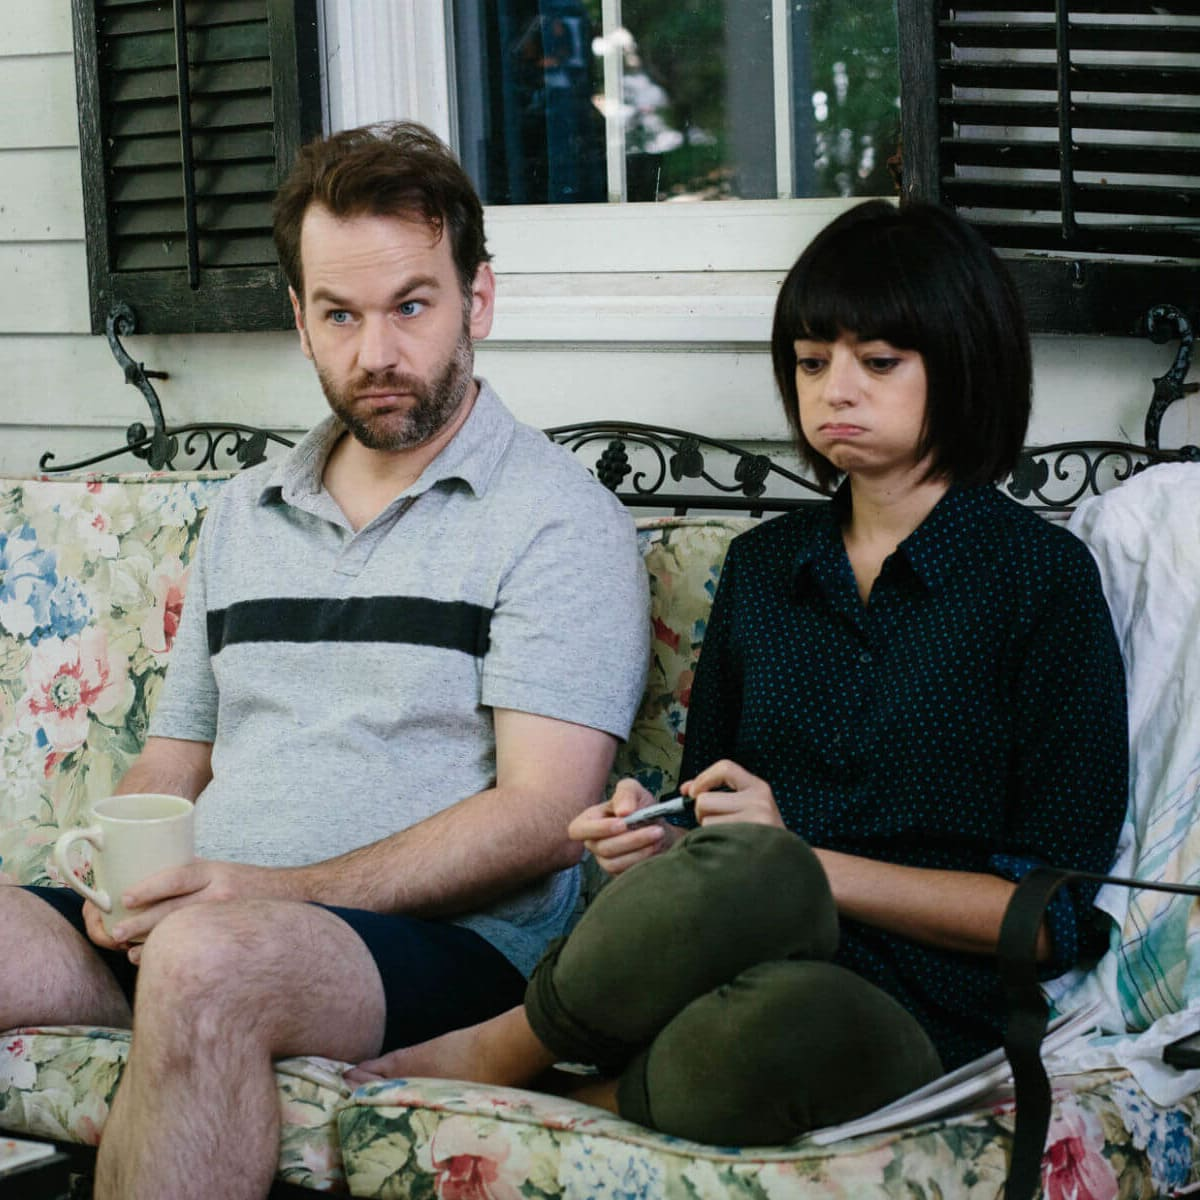 Mike Birbiglia and Kate Micucci in Don't Think Twice